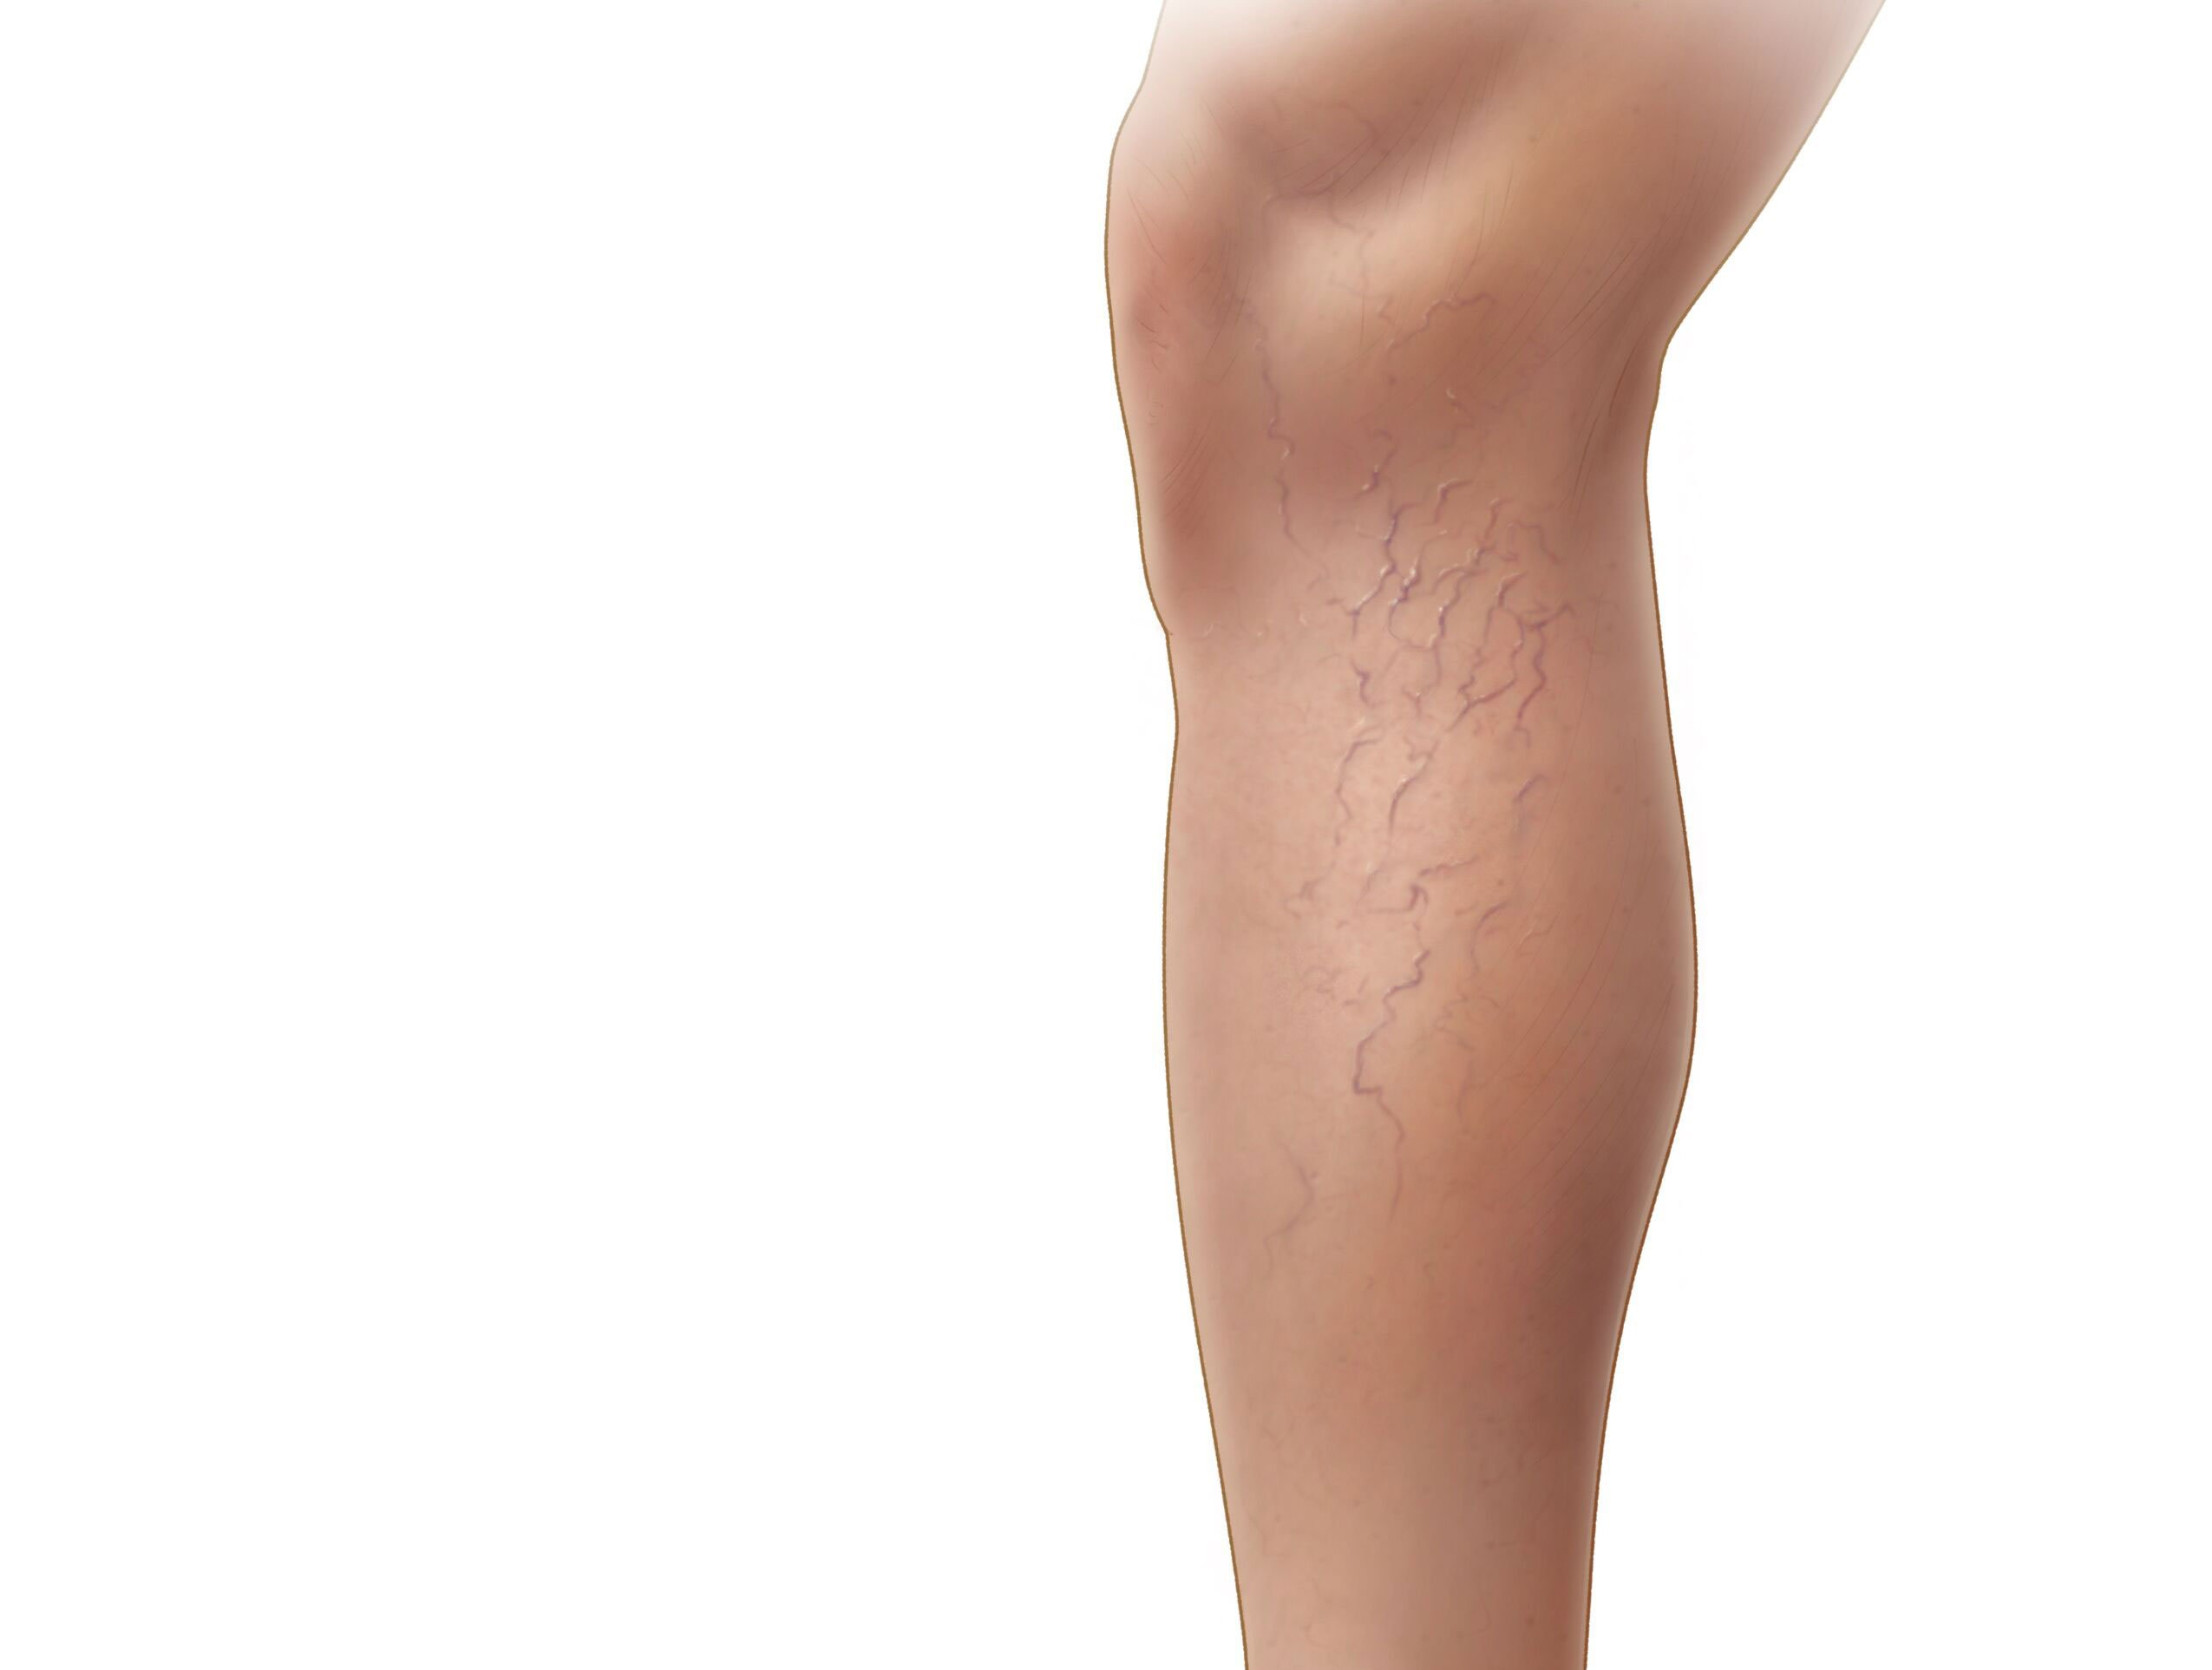 Medical illustration of a leg with spider veins